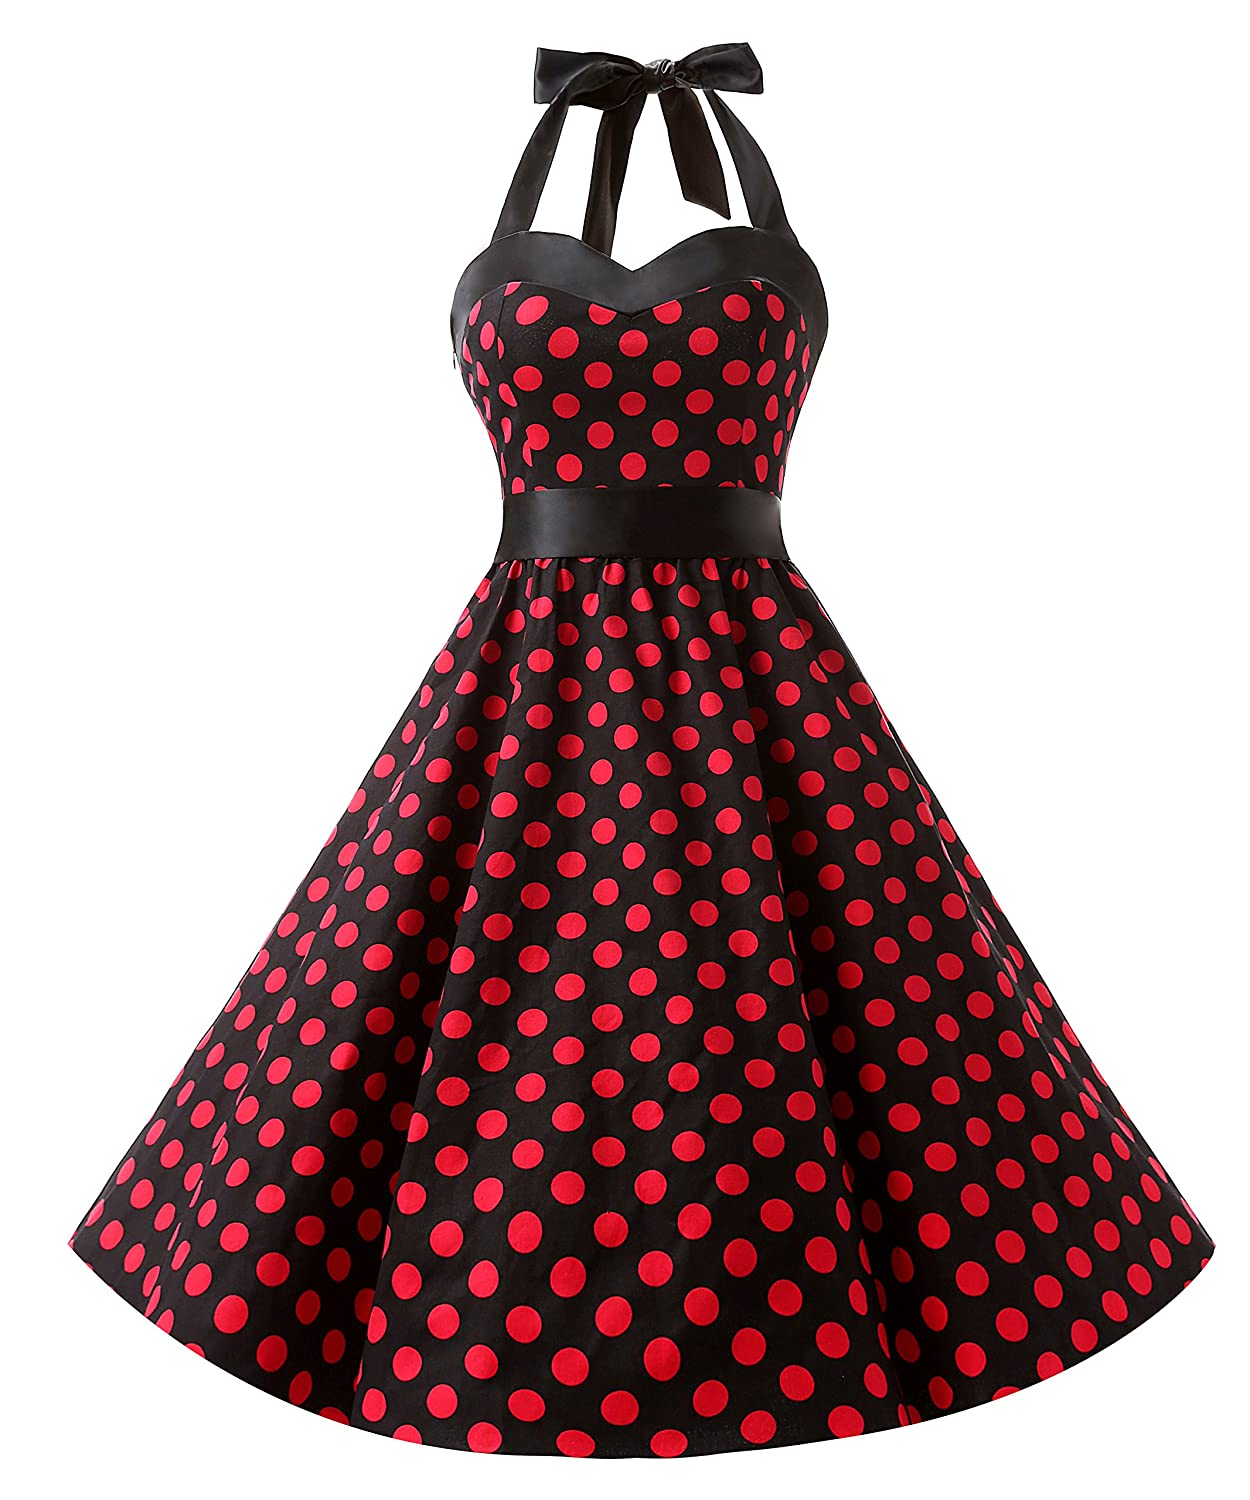 TALLA 3XL. Dresstells® Halter 50s Rockabilly Polka Dots Audrey Dress Retro Cocktail Dress Black Red Dot 3XL